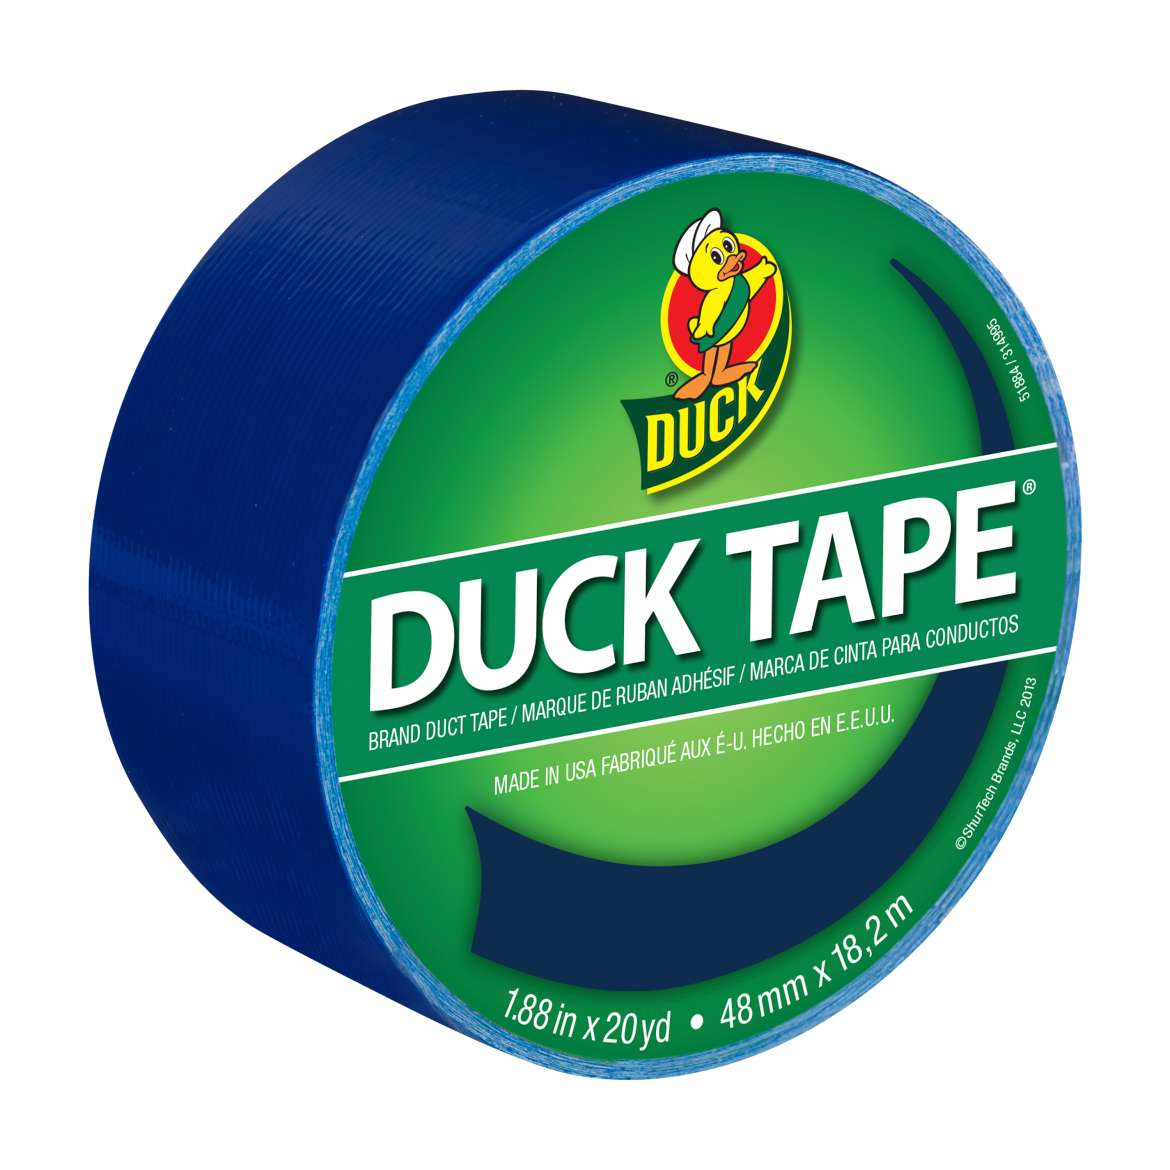 Color Duck Tape® Brand Duct Tape - Blue, 1.88 in. x 20 yd. Image